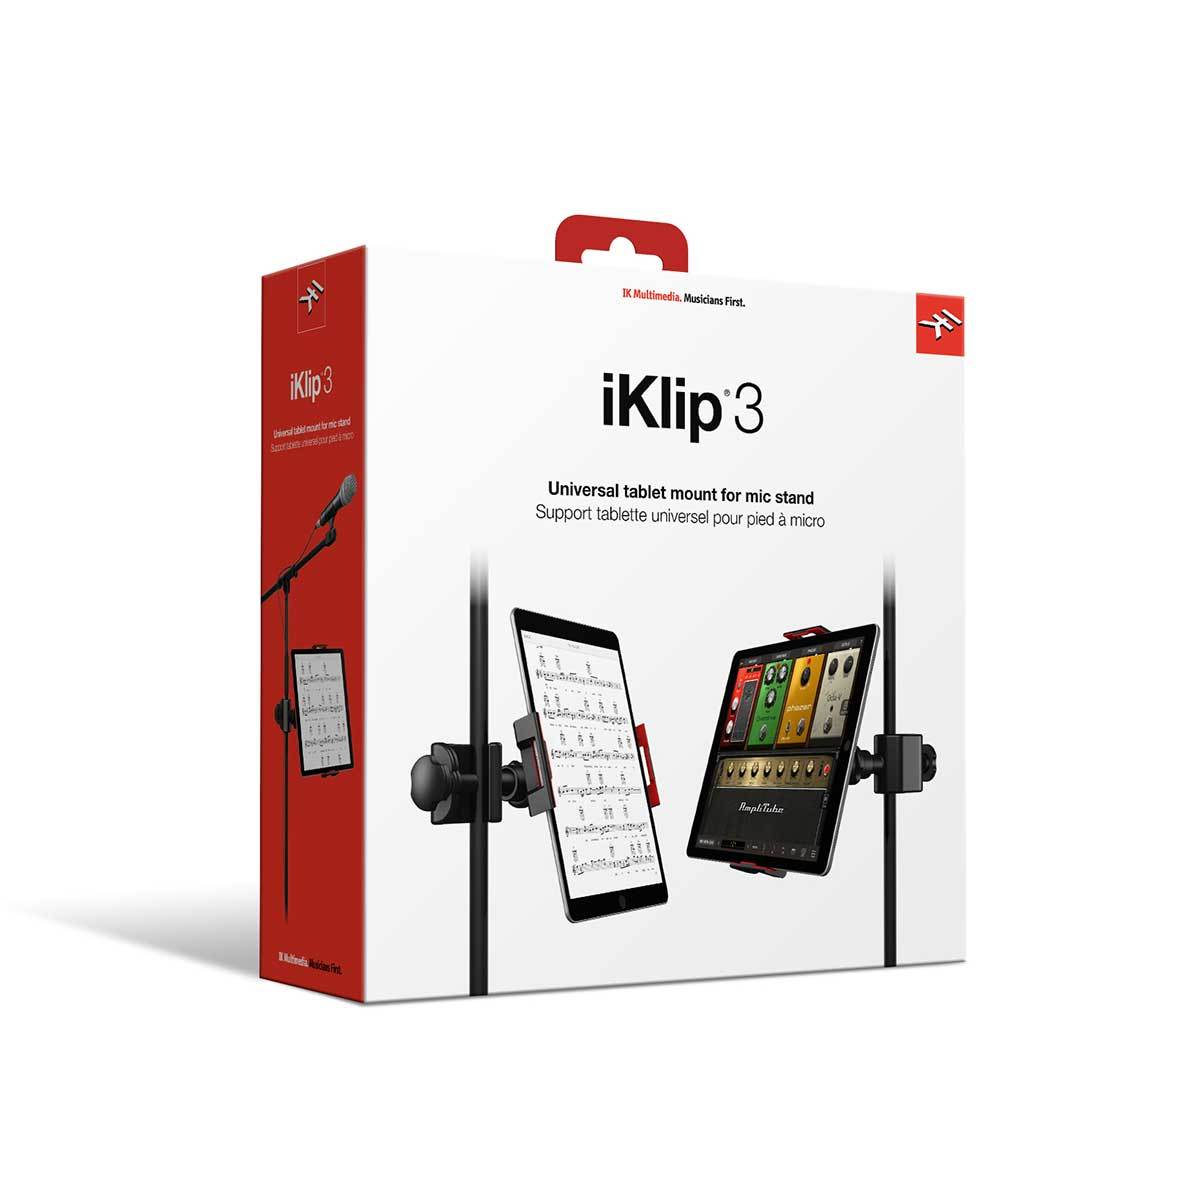 PA Accessories - IK Multimedia Iklip 3 Universal Stand Mount For Tablets And IPad